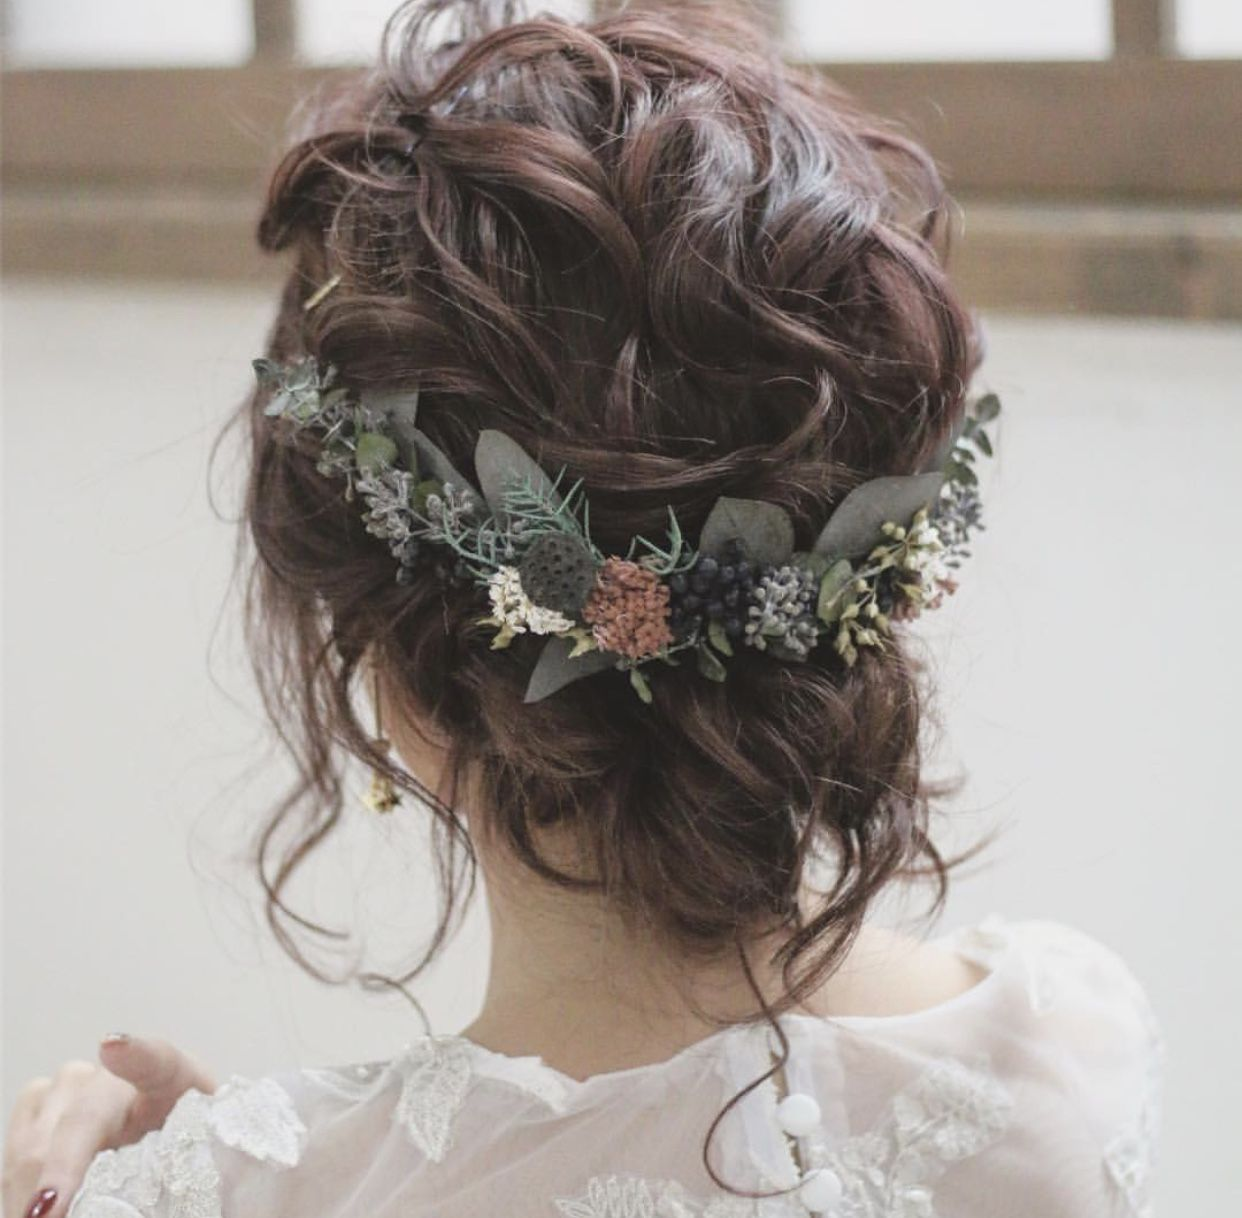 Wedding Hairstyles Boho: Whimsical / Bohemian / Romantic